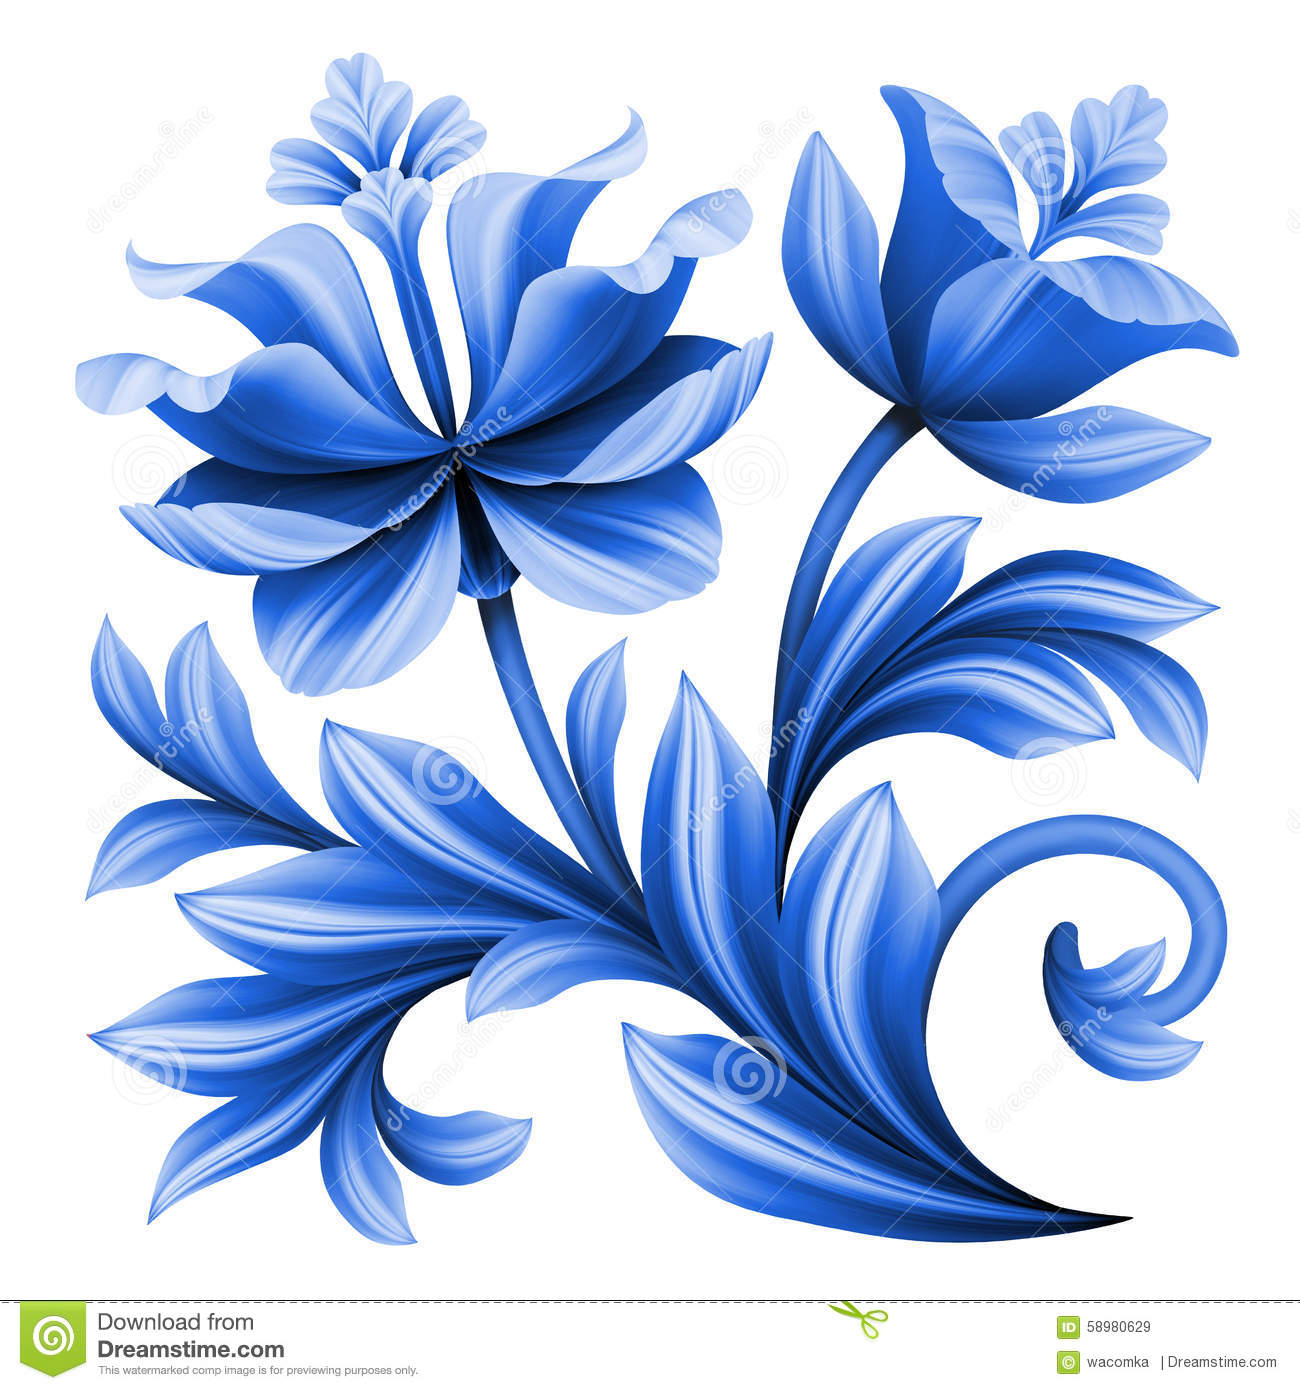 Artistic floral element abstract gzhel folk art blue flowers stock - Abstract Art Artistic Background Blue Element Floral Flowers Folk